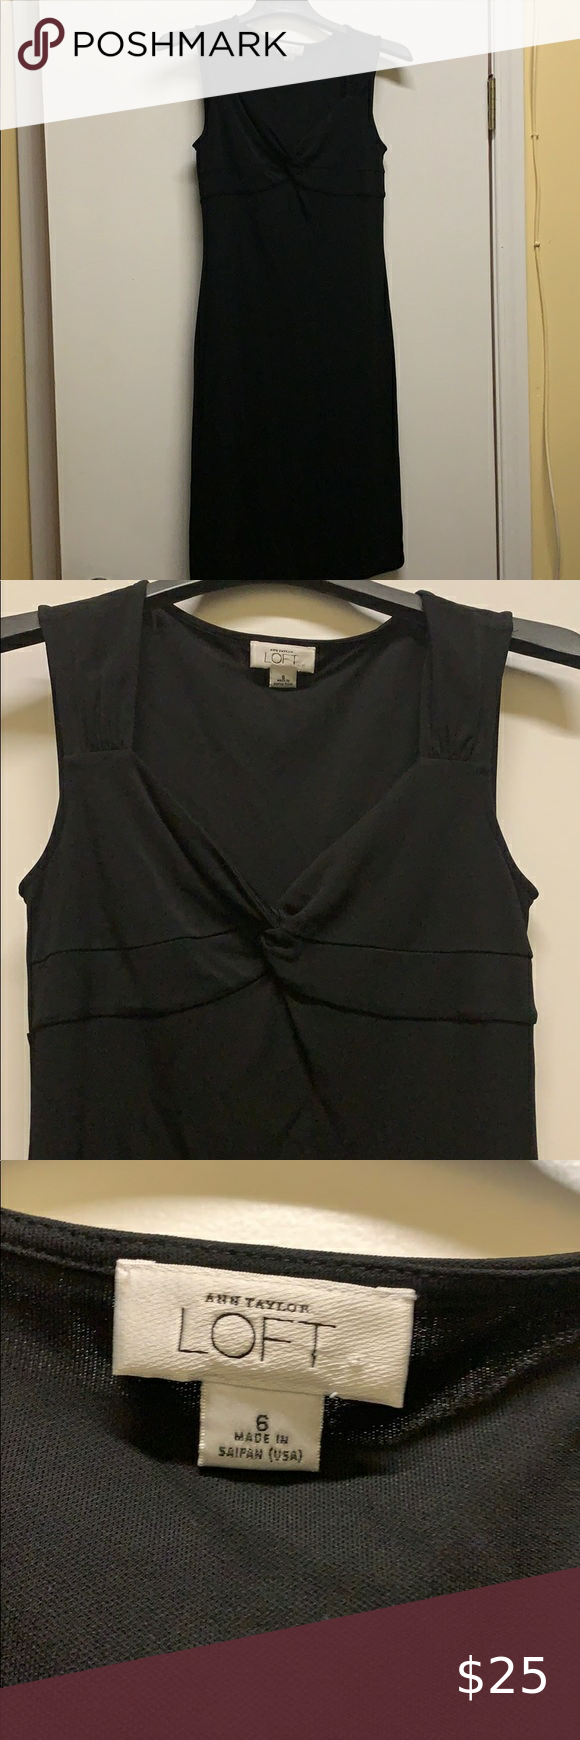 """Ann Taylor loft black dress Dress in great condition. Stretchy material. 38"""" from shoulder to hem. 16"""" bust.  #054 LOFT Dresses"""